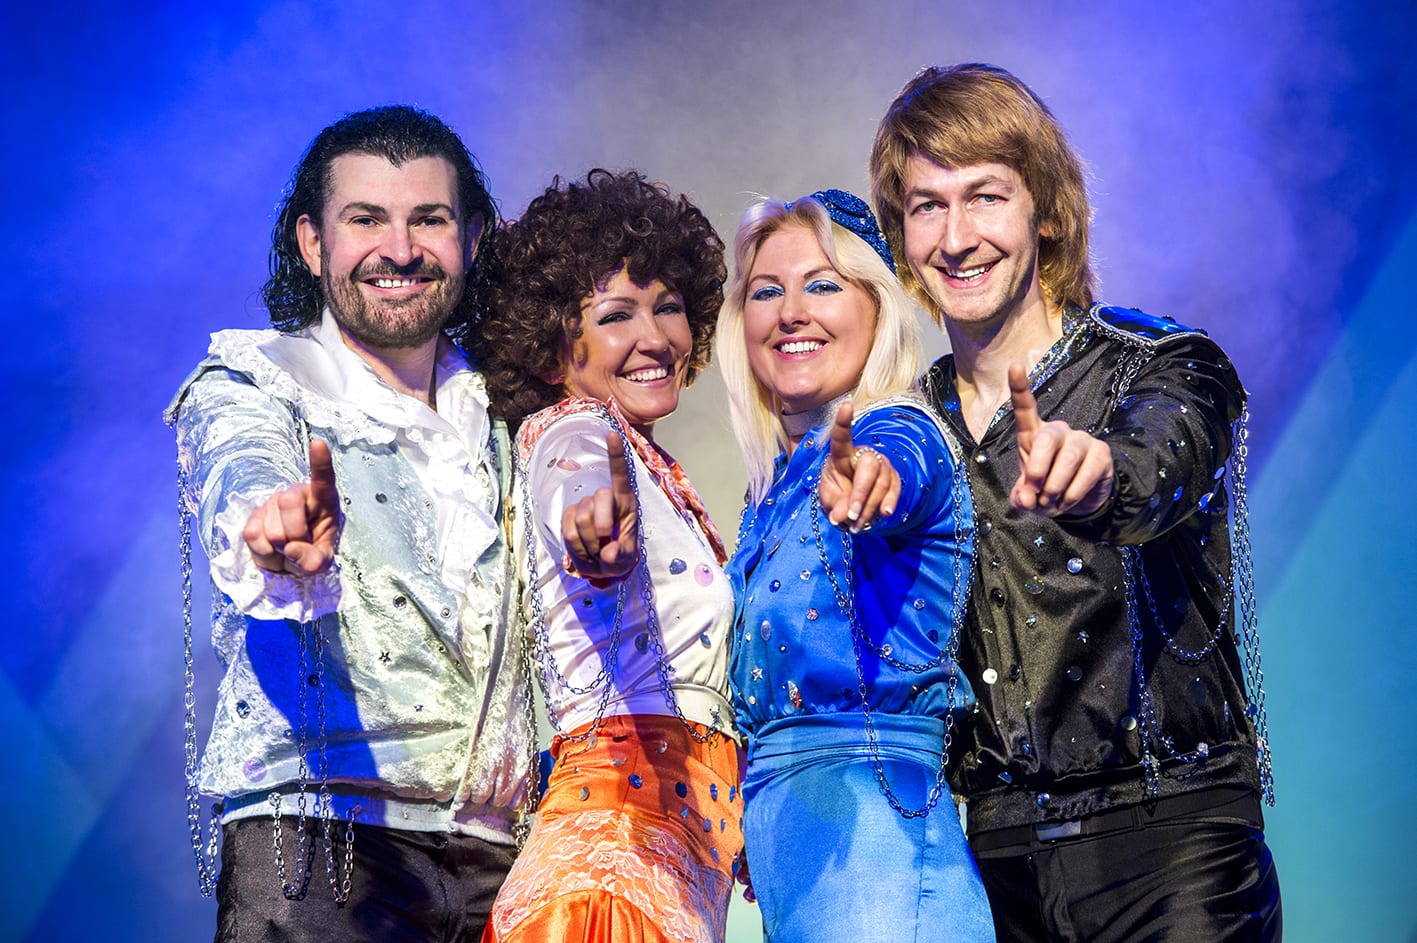 Abba Band Abba Arrival Abba Tribute Band Voted Uk 39s Best